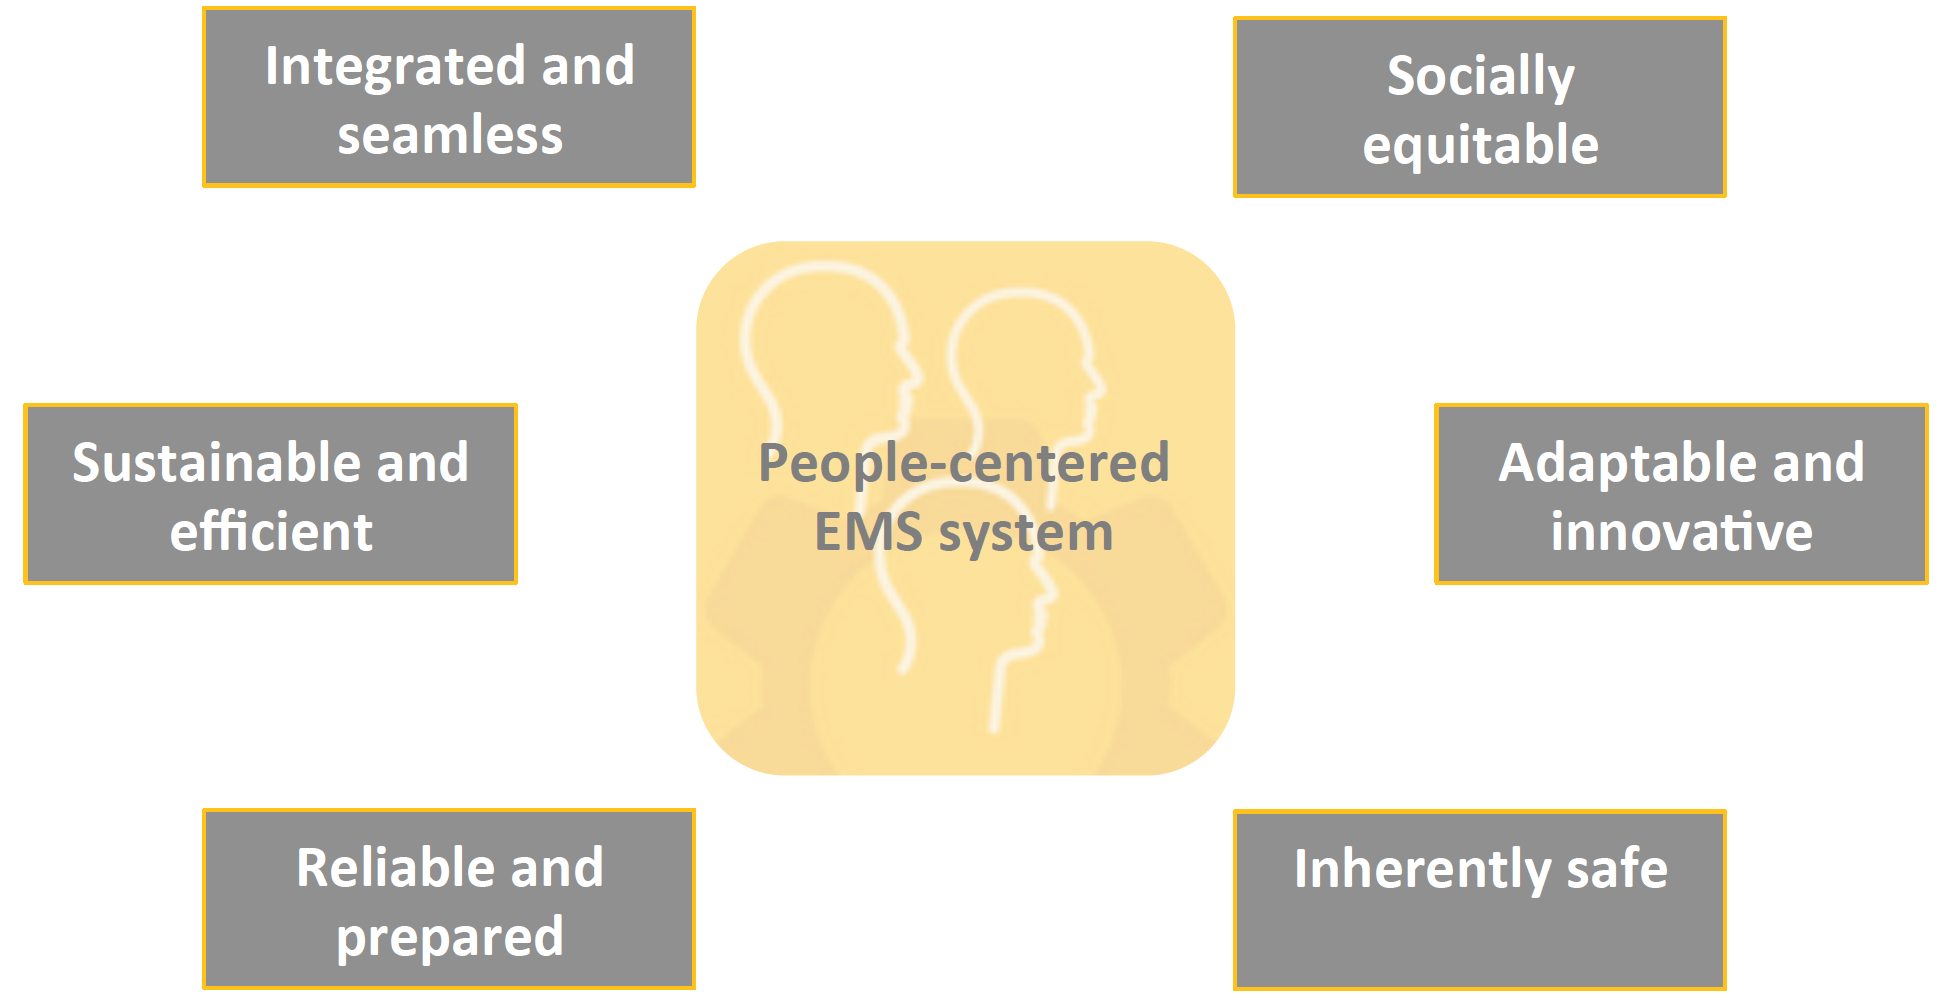 "The term ""people-centered"" is used rather than patient-centered as the EMS system must meet the needs of patients, families, communities and care providers."